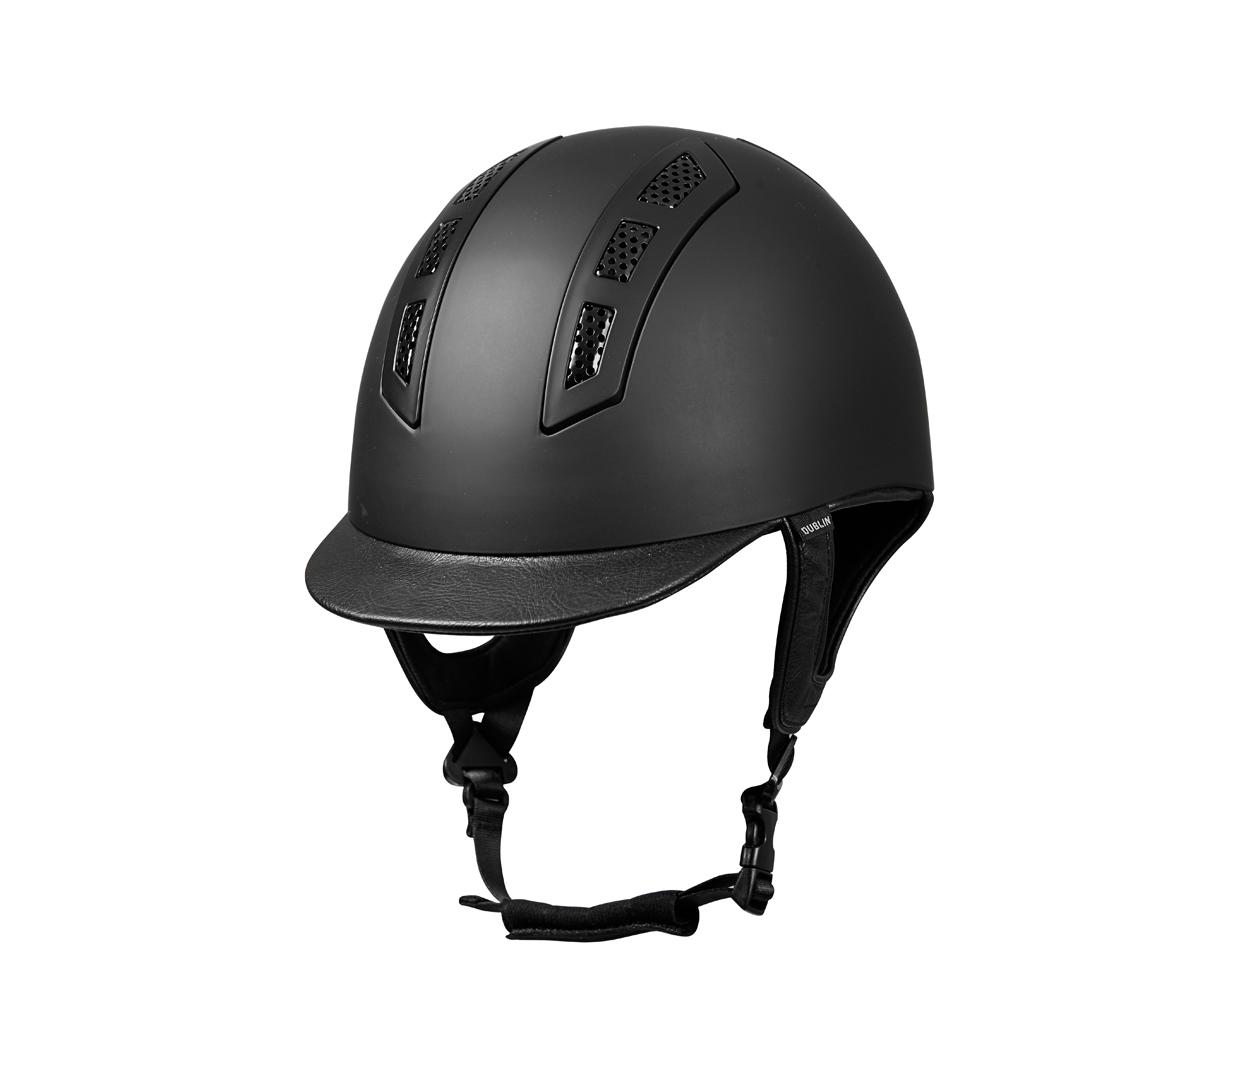 arista-helmet-black-matt-804683